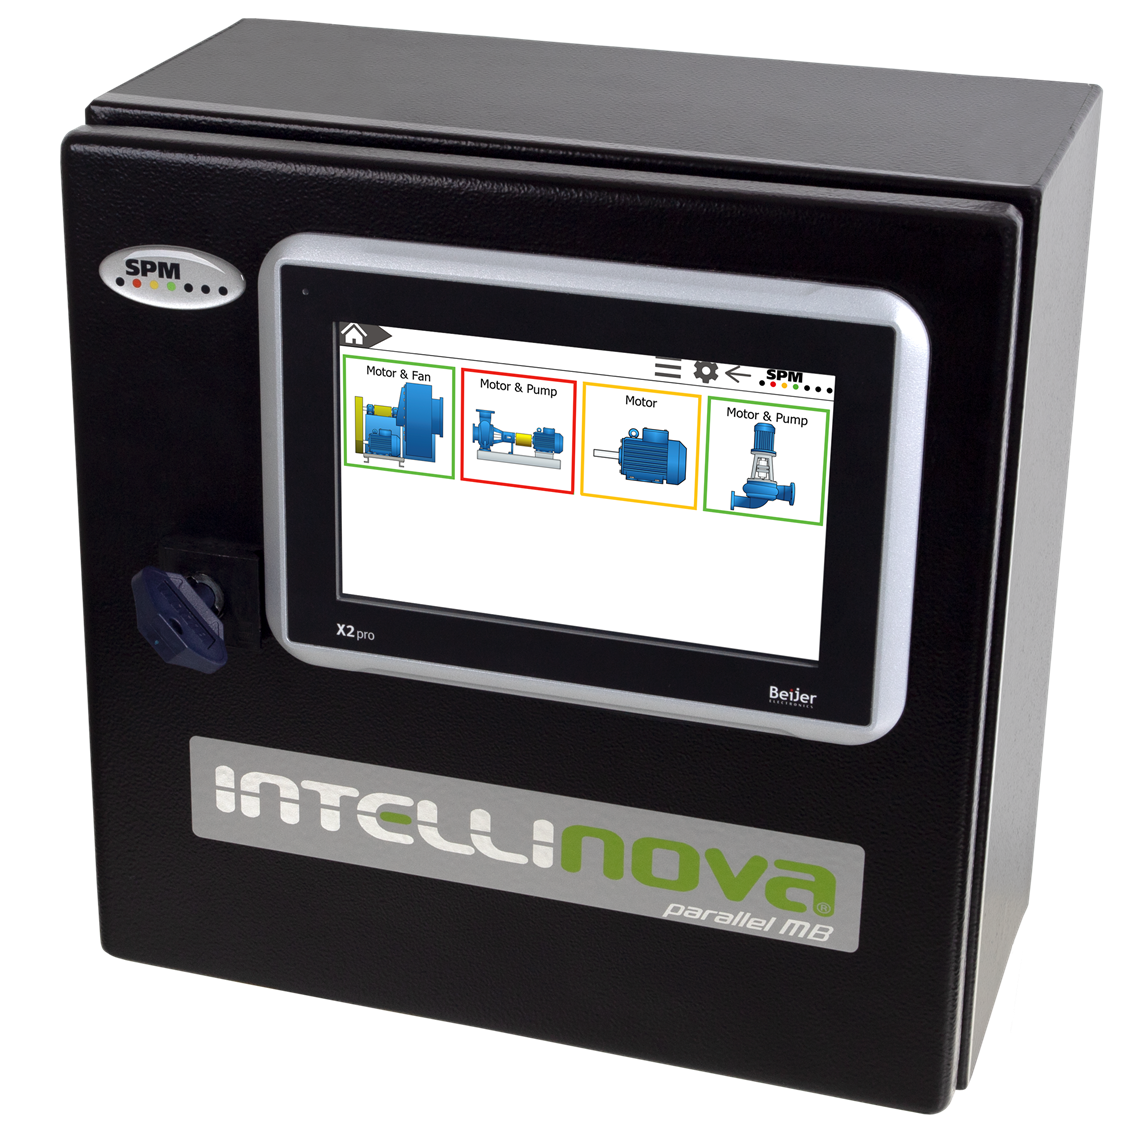 Intellinova Parallel MB system with HMI display installed on the cabinet